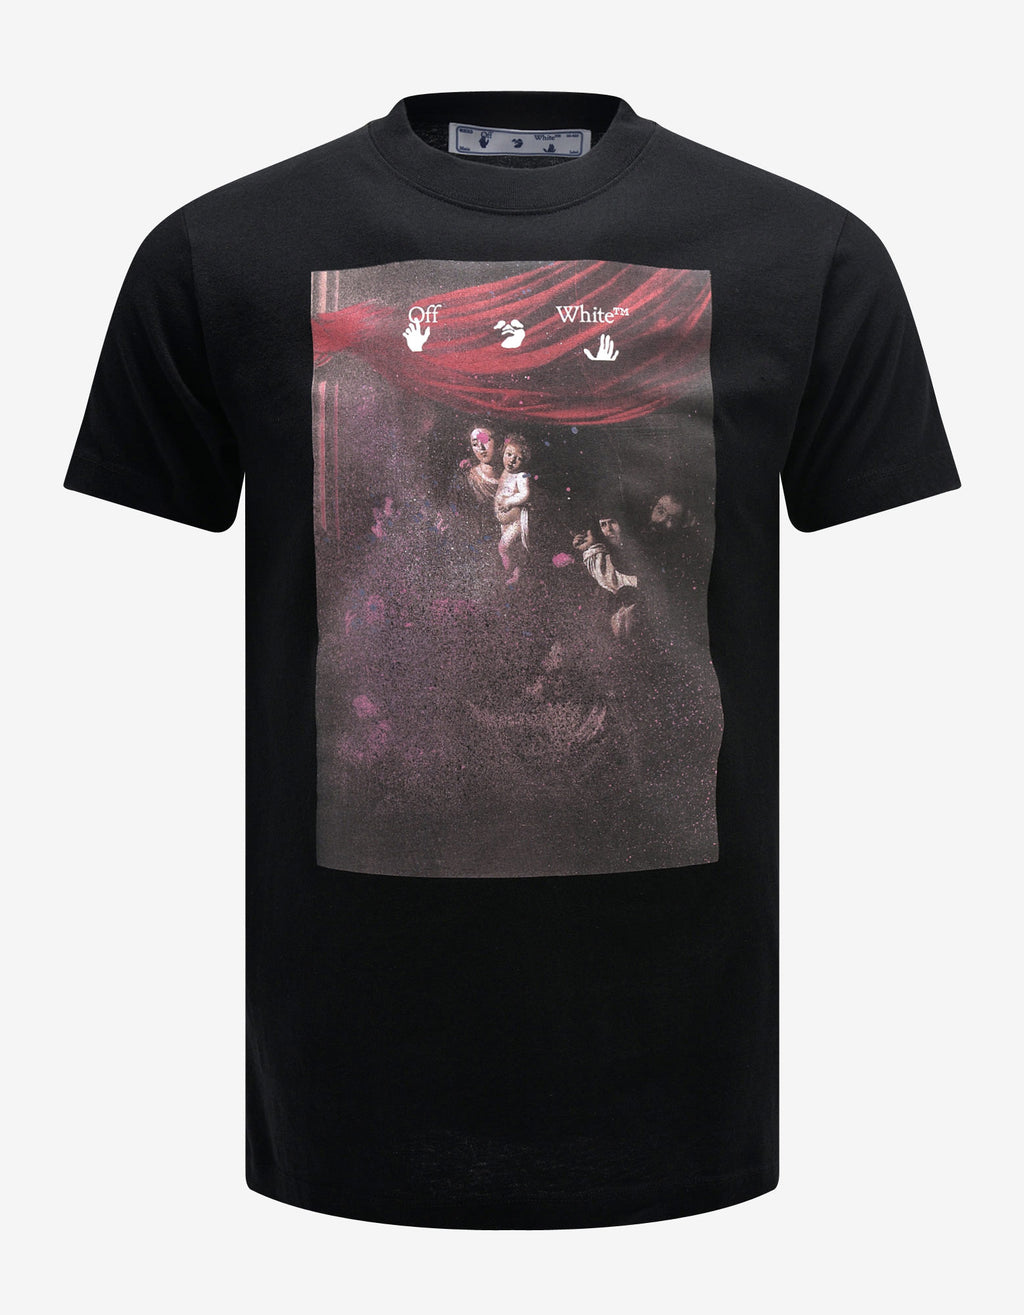 Black Sprayed Caravaggio Print T-Shirt